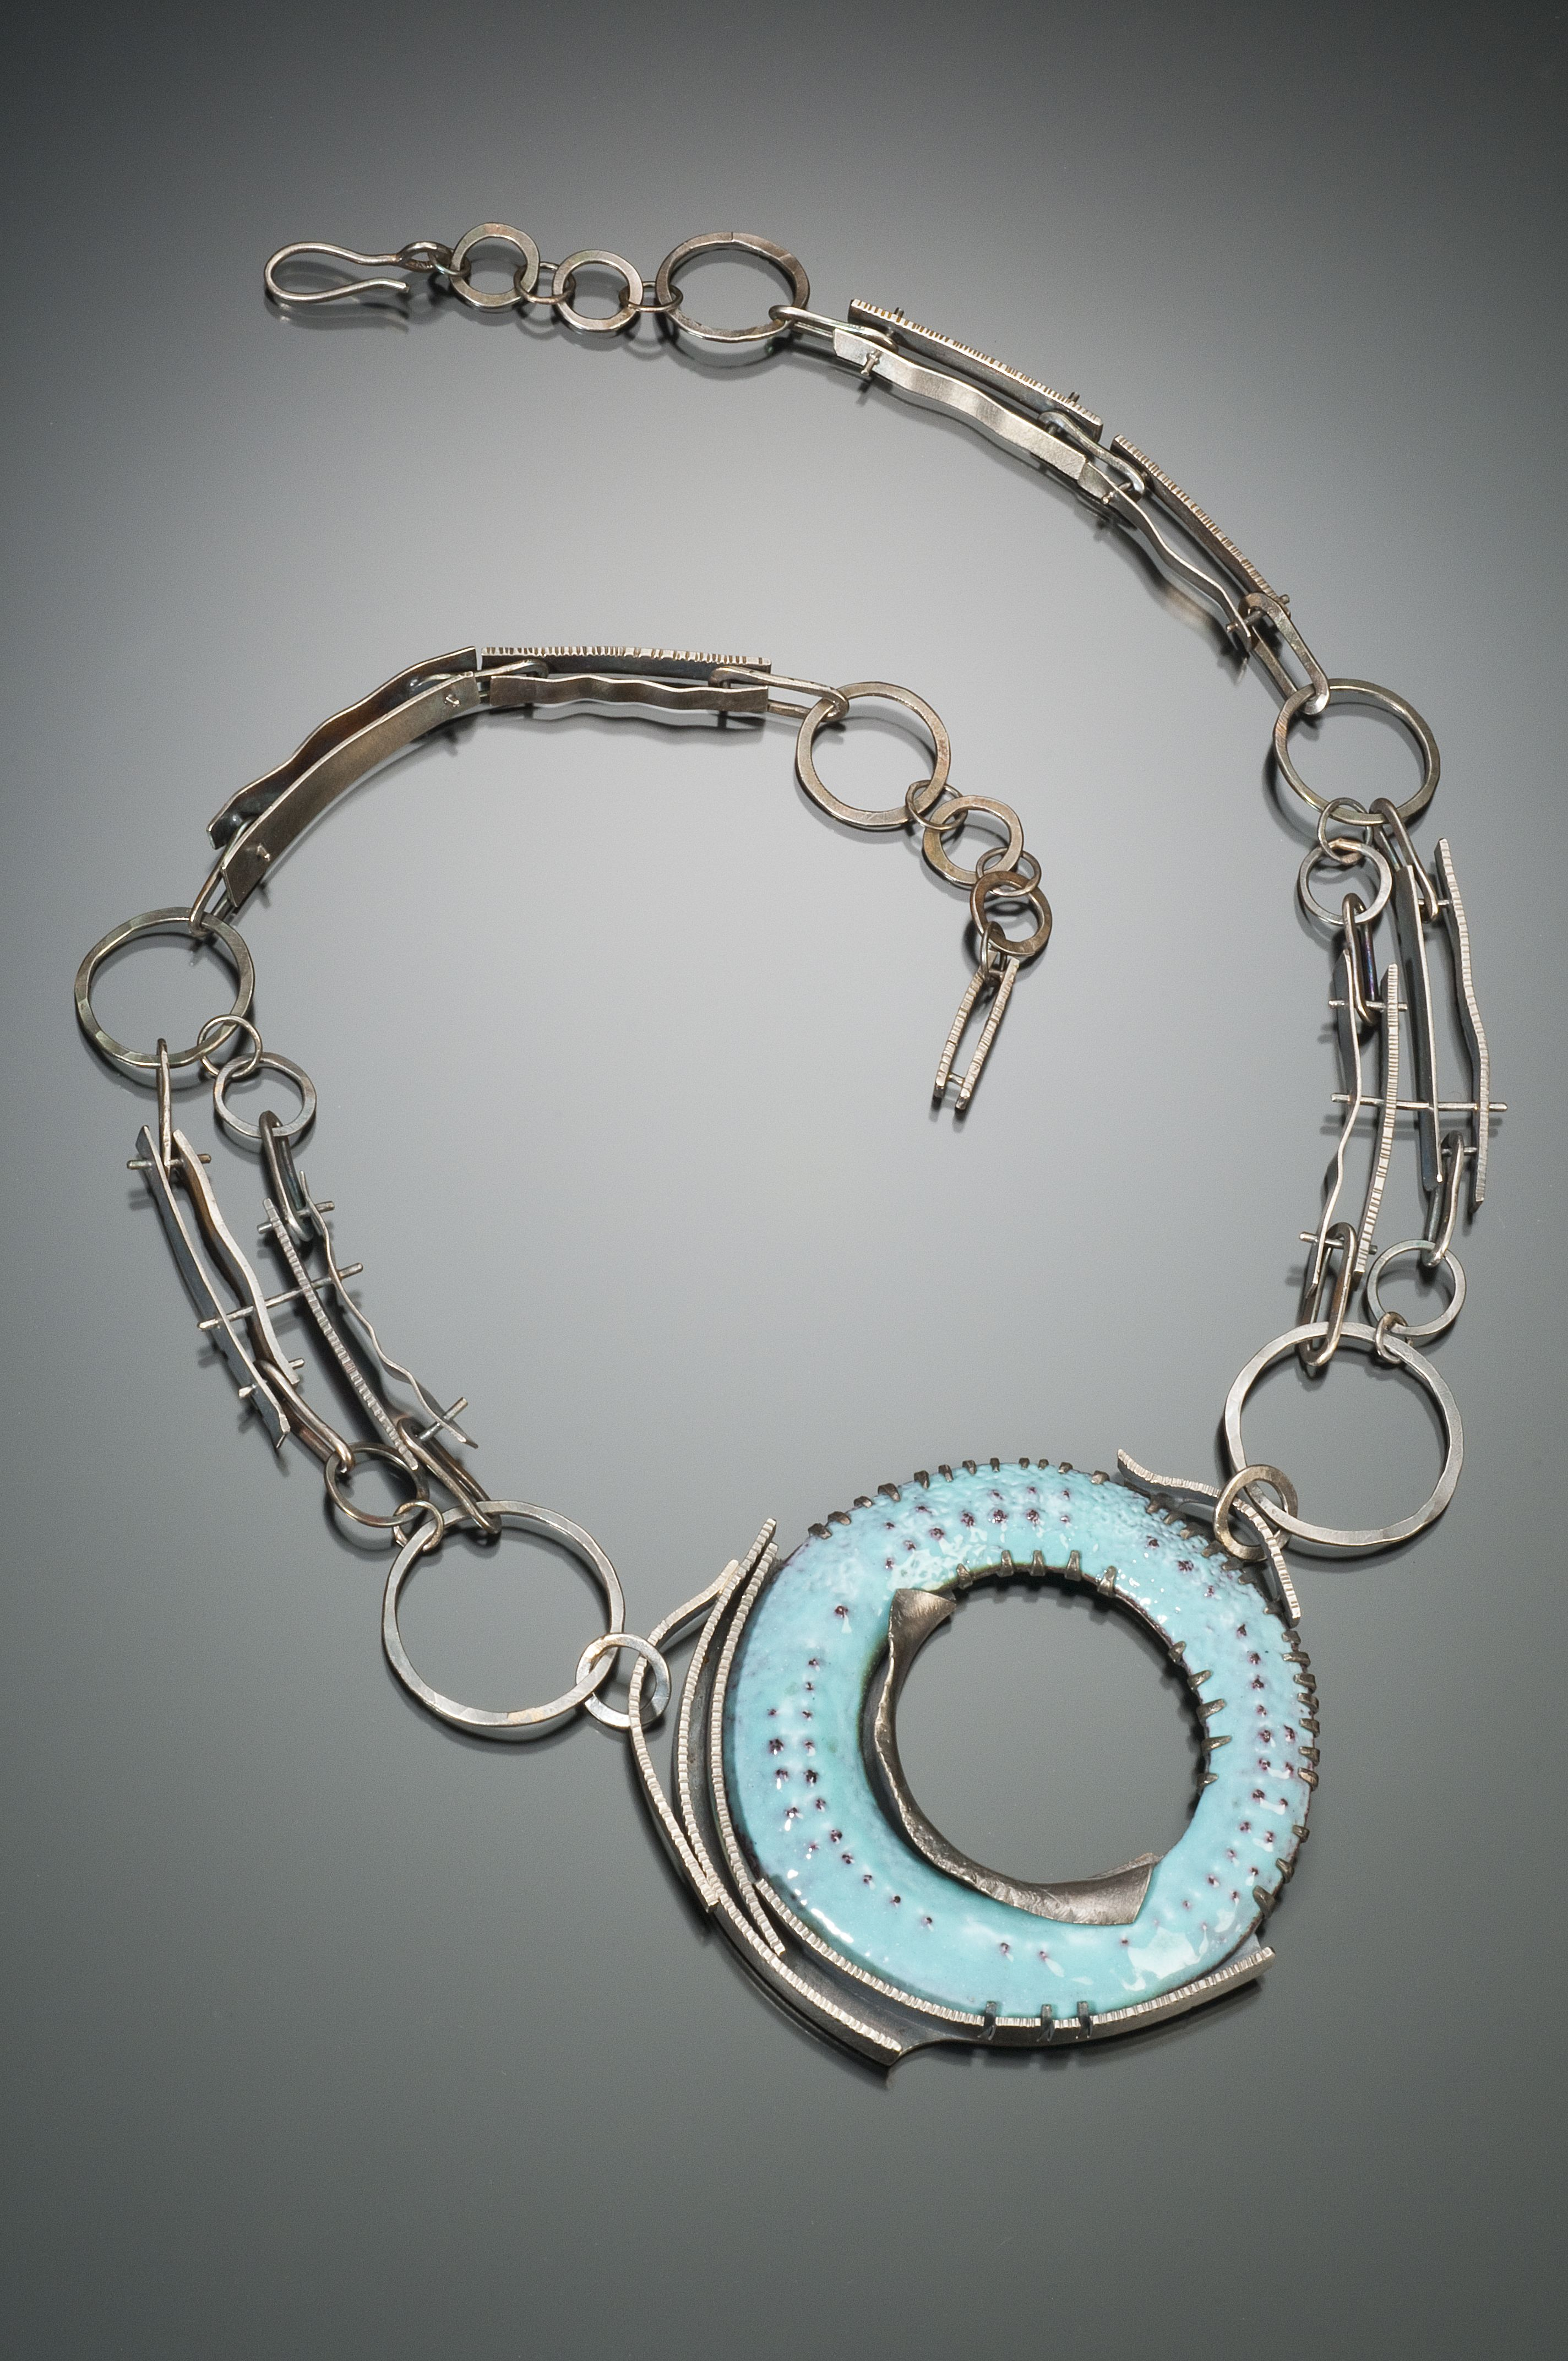 This is enamel on copper and sterling silver. Photo by Robert Diamante